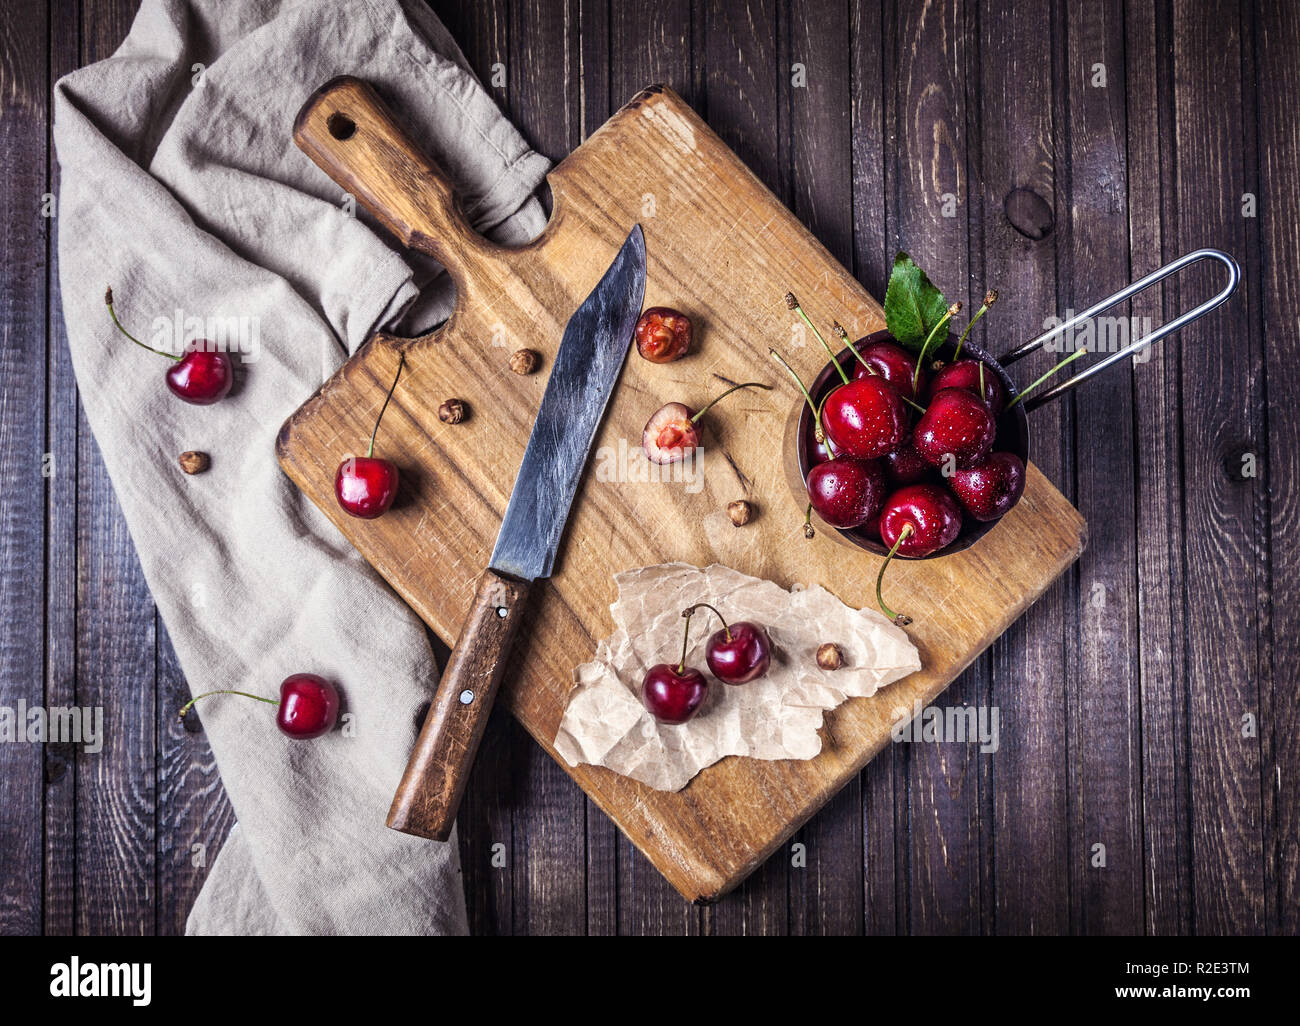 Cherry on the cutting board with knife on wooden table in the kitchen - Stock Image